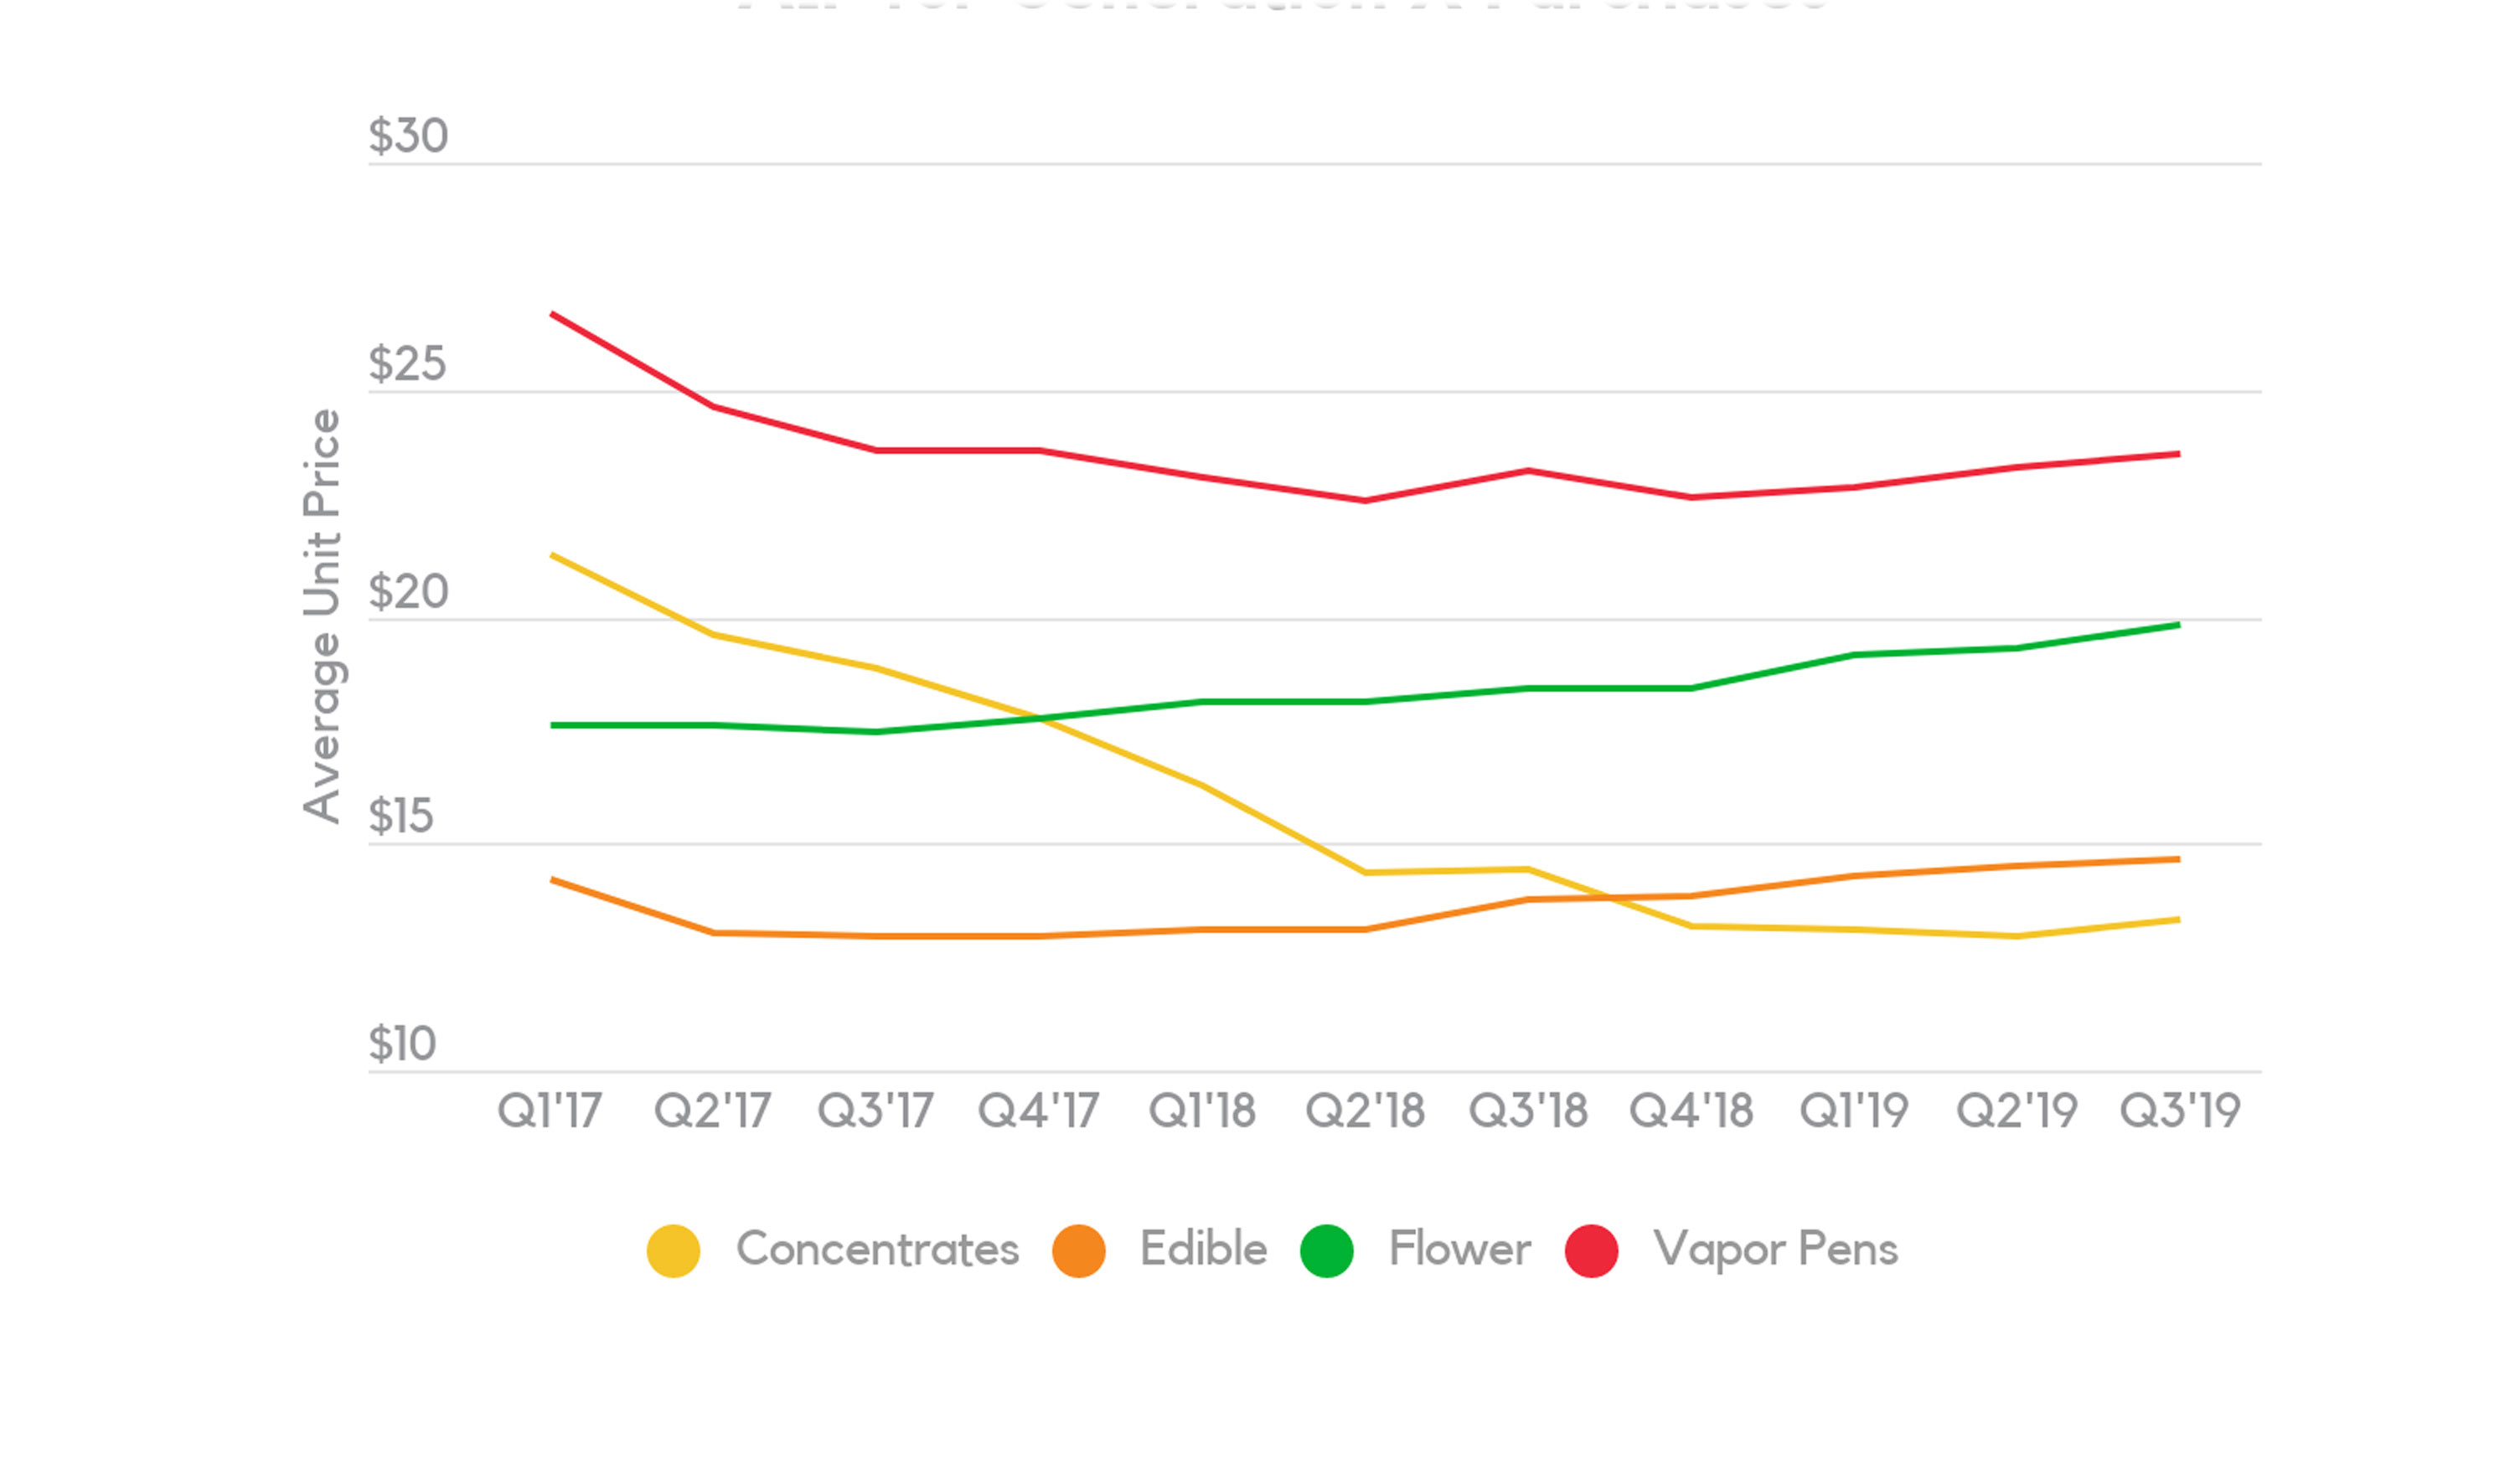 Generation X AIP Trends – Top 4 Cannabis Categories